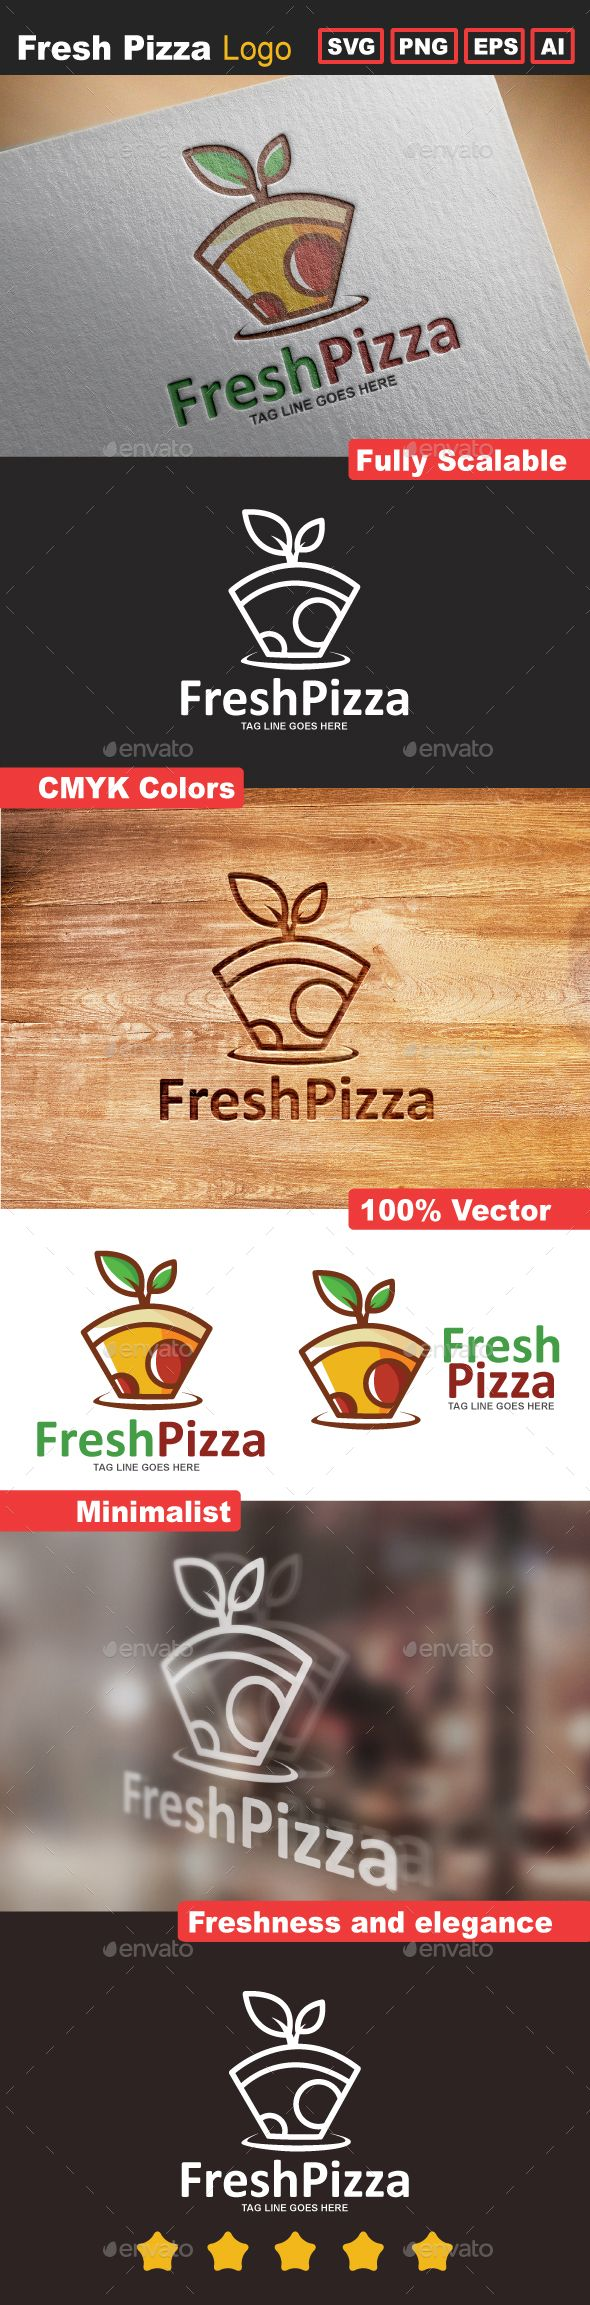 Fresh Pizza Logo Template - Food Logo Templates